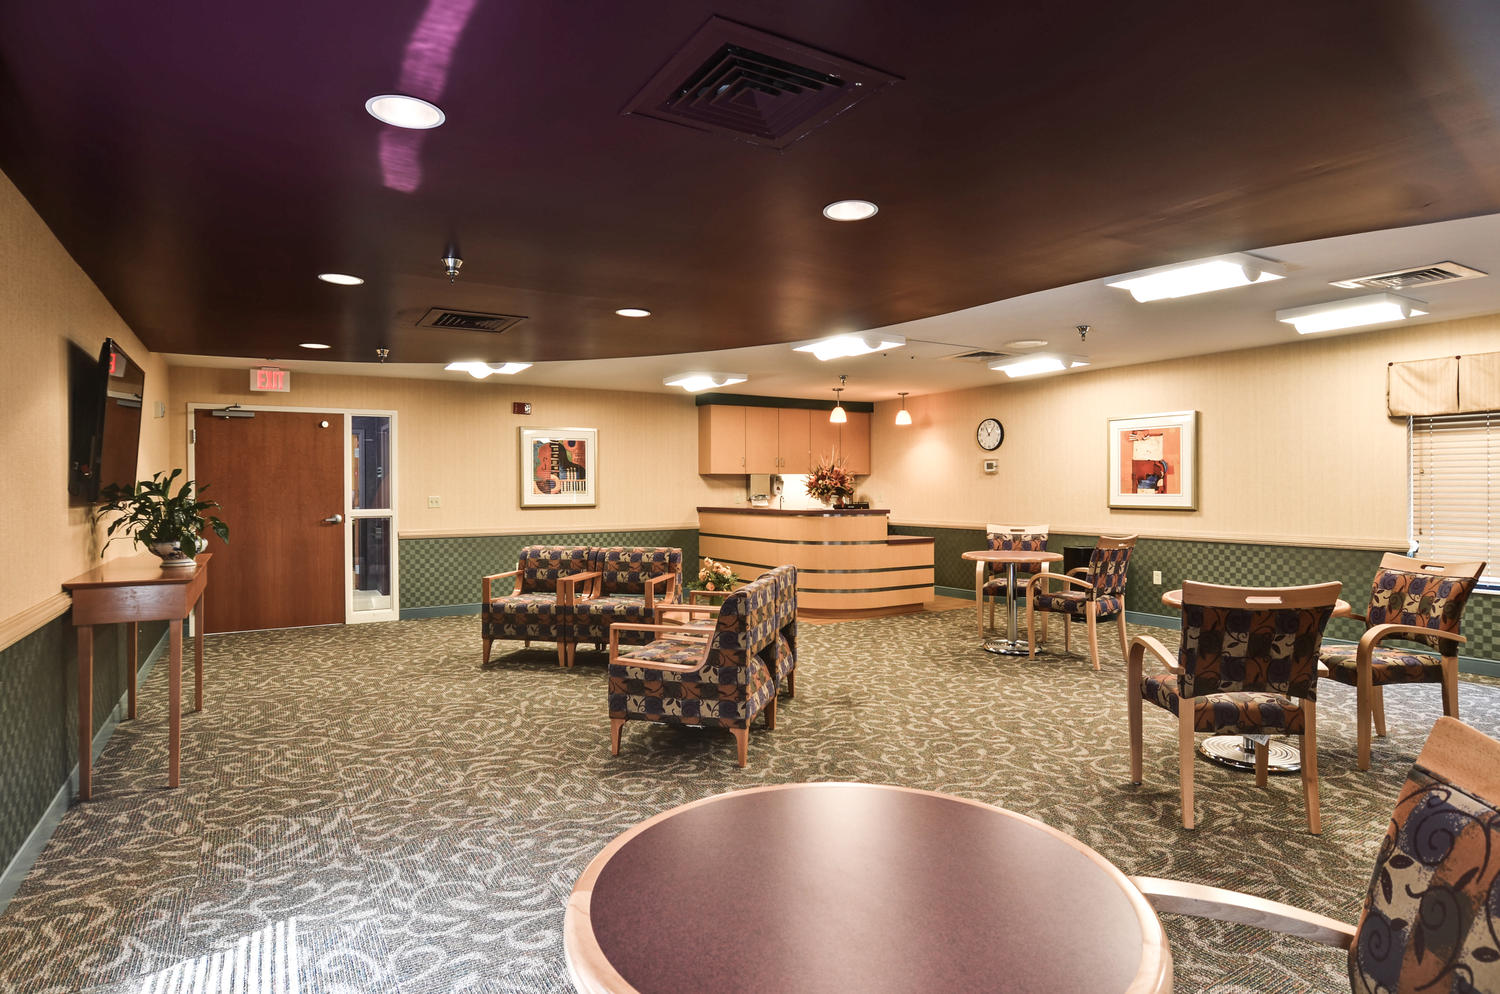 Stonerise Clarksburg internet cafe with seating areas and TV